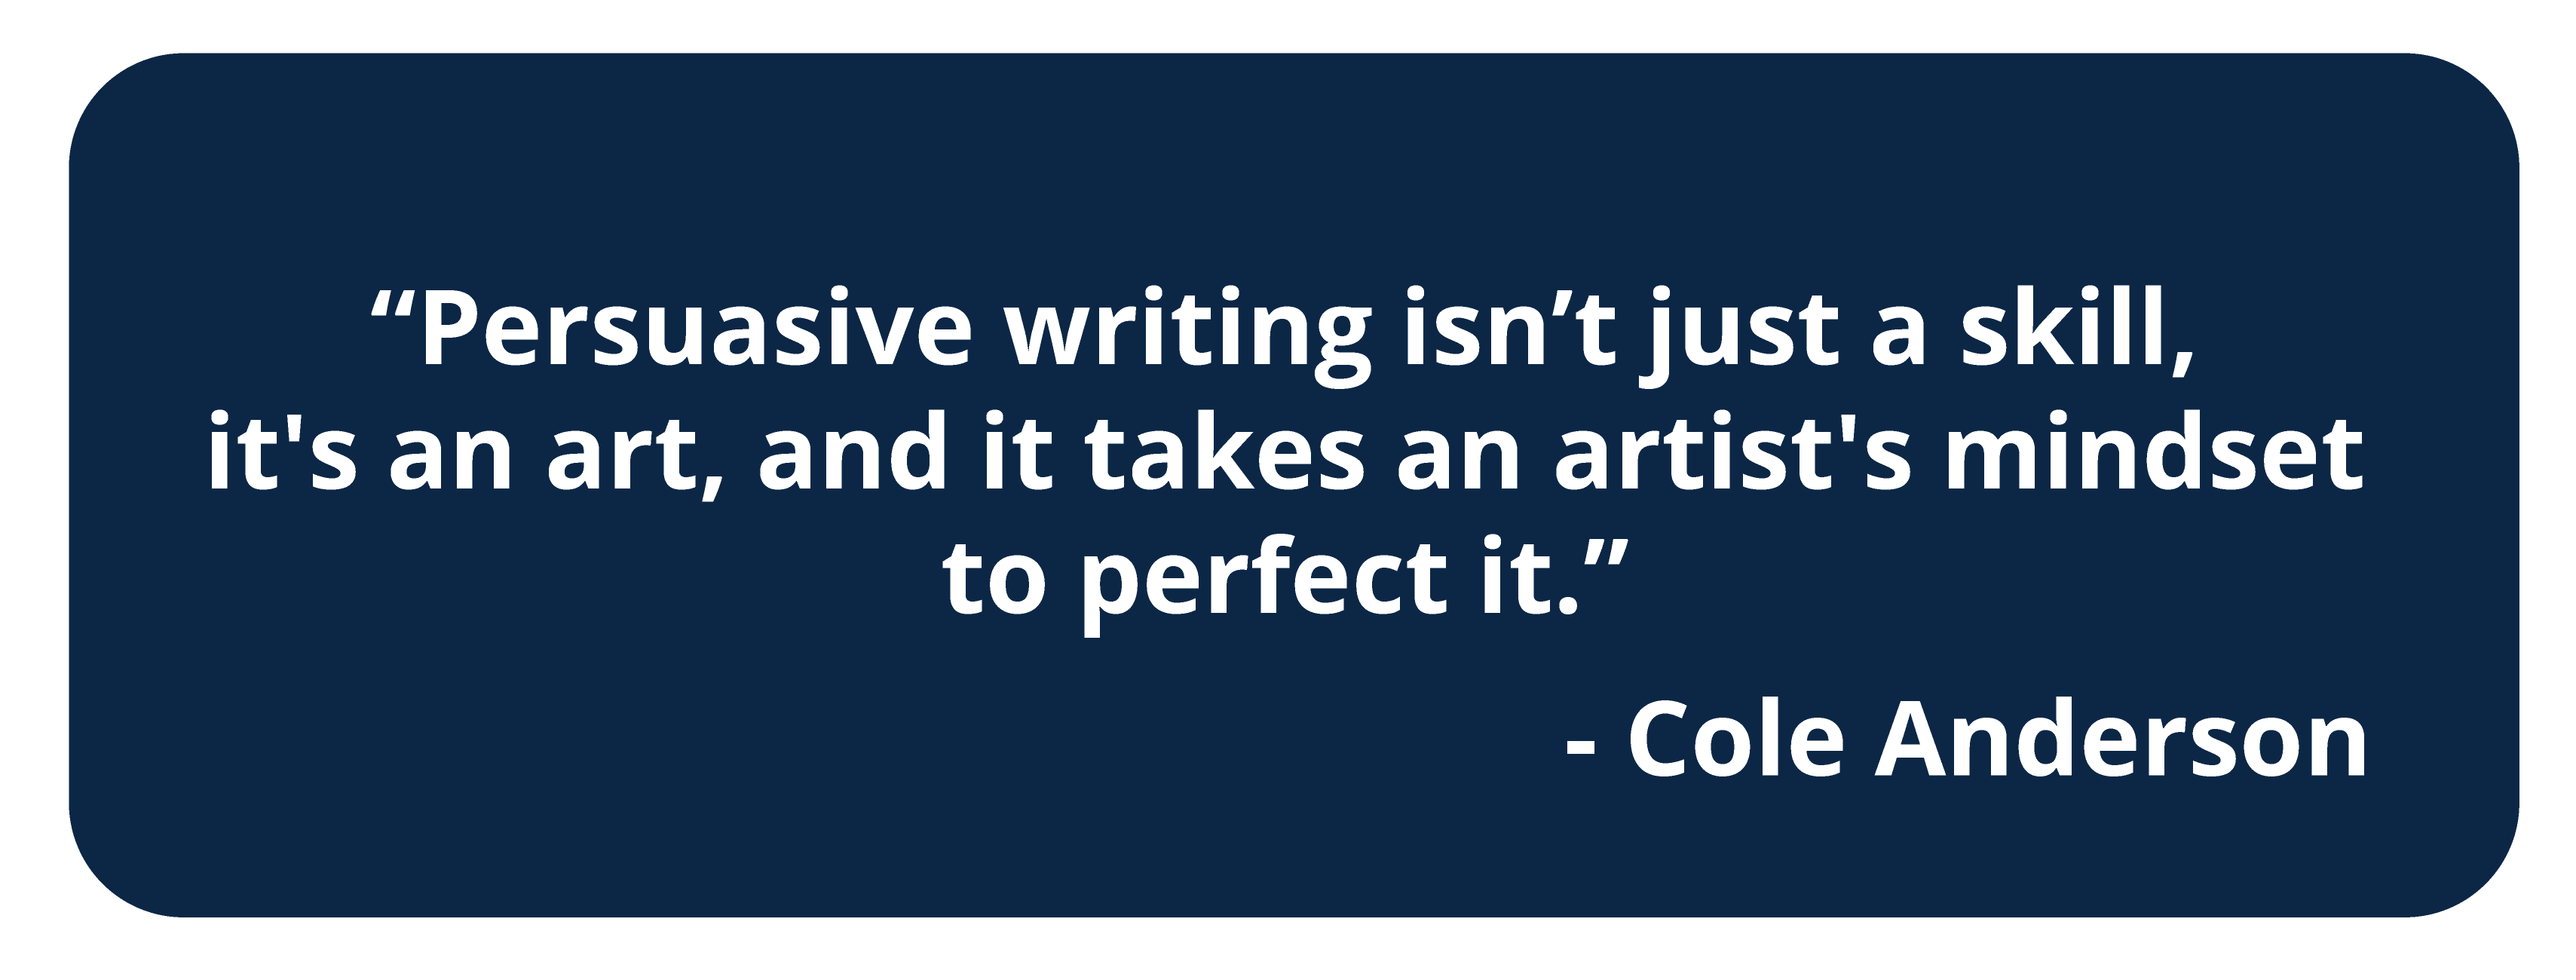 Quote, about persuasive writing